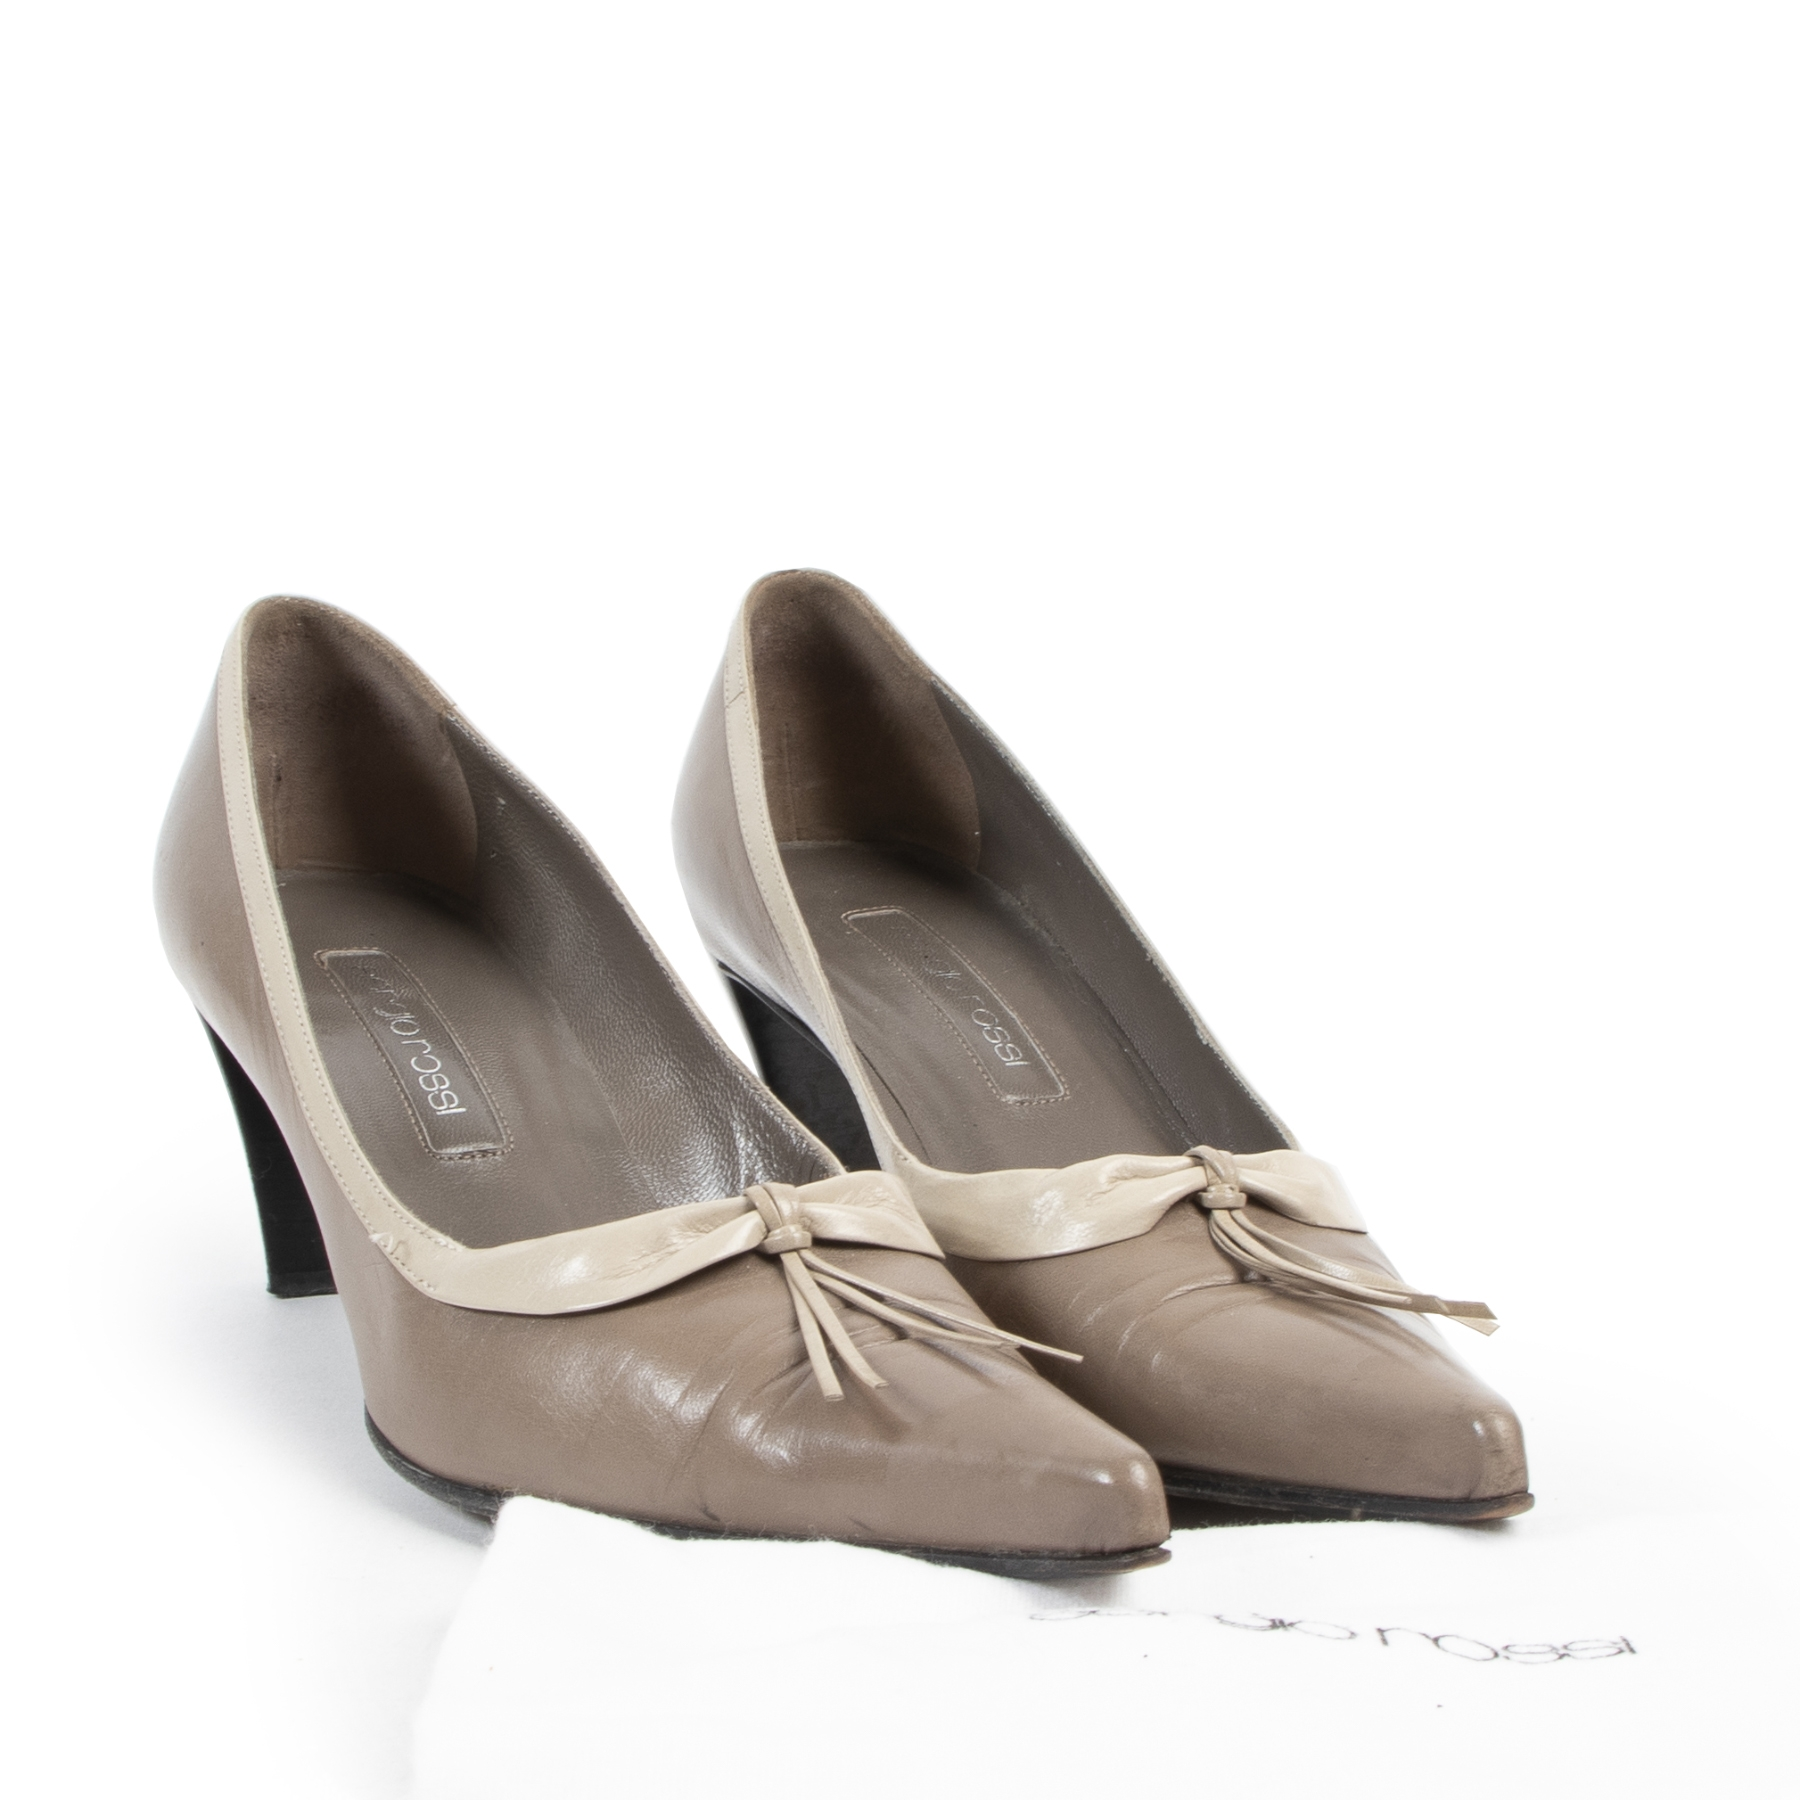 Sergio Rossi Taupe Leather Heels - Size 40